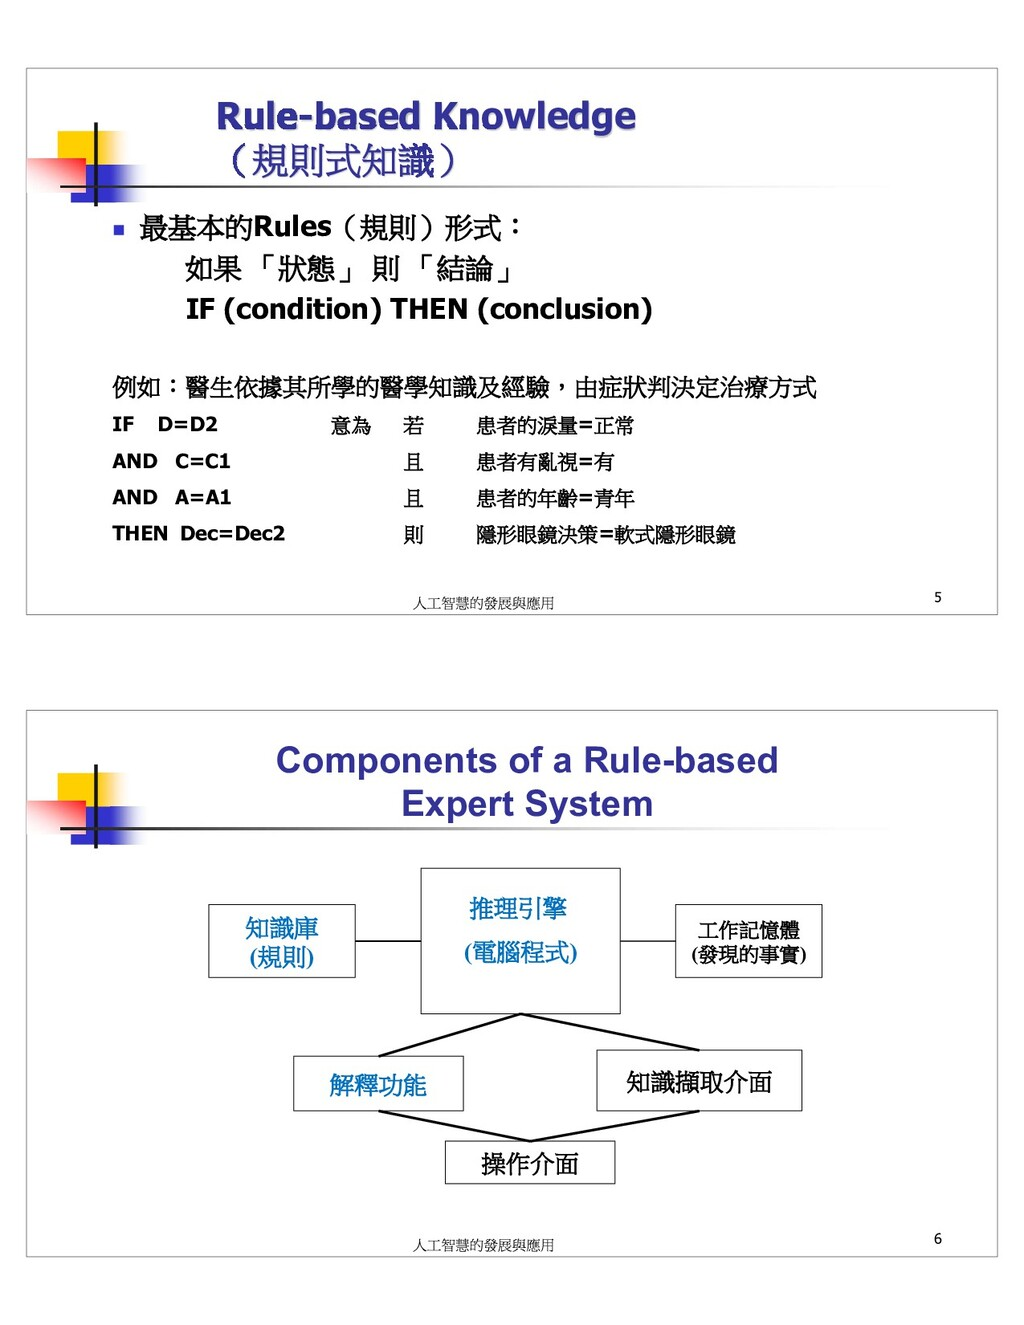 Rule-based Knowledge Rules IF (condition) THEN ...